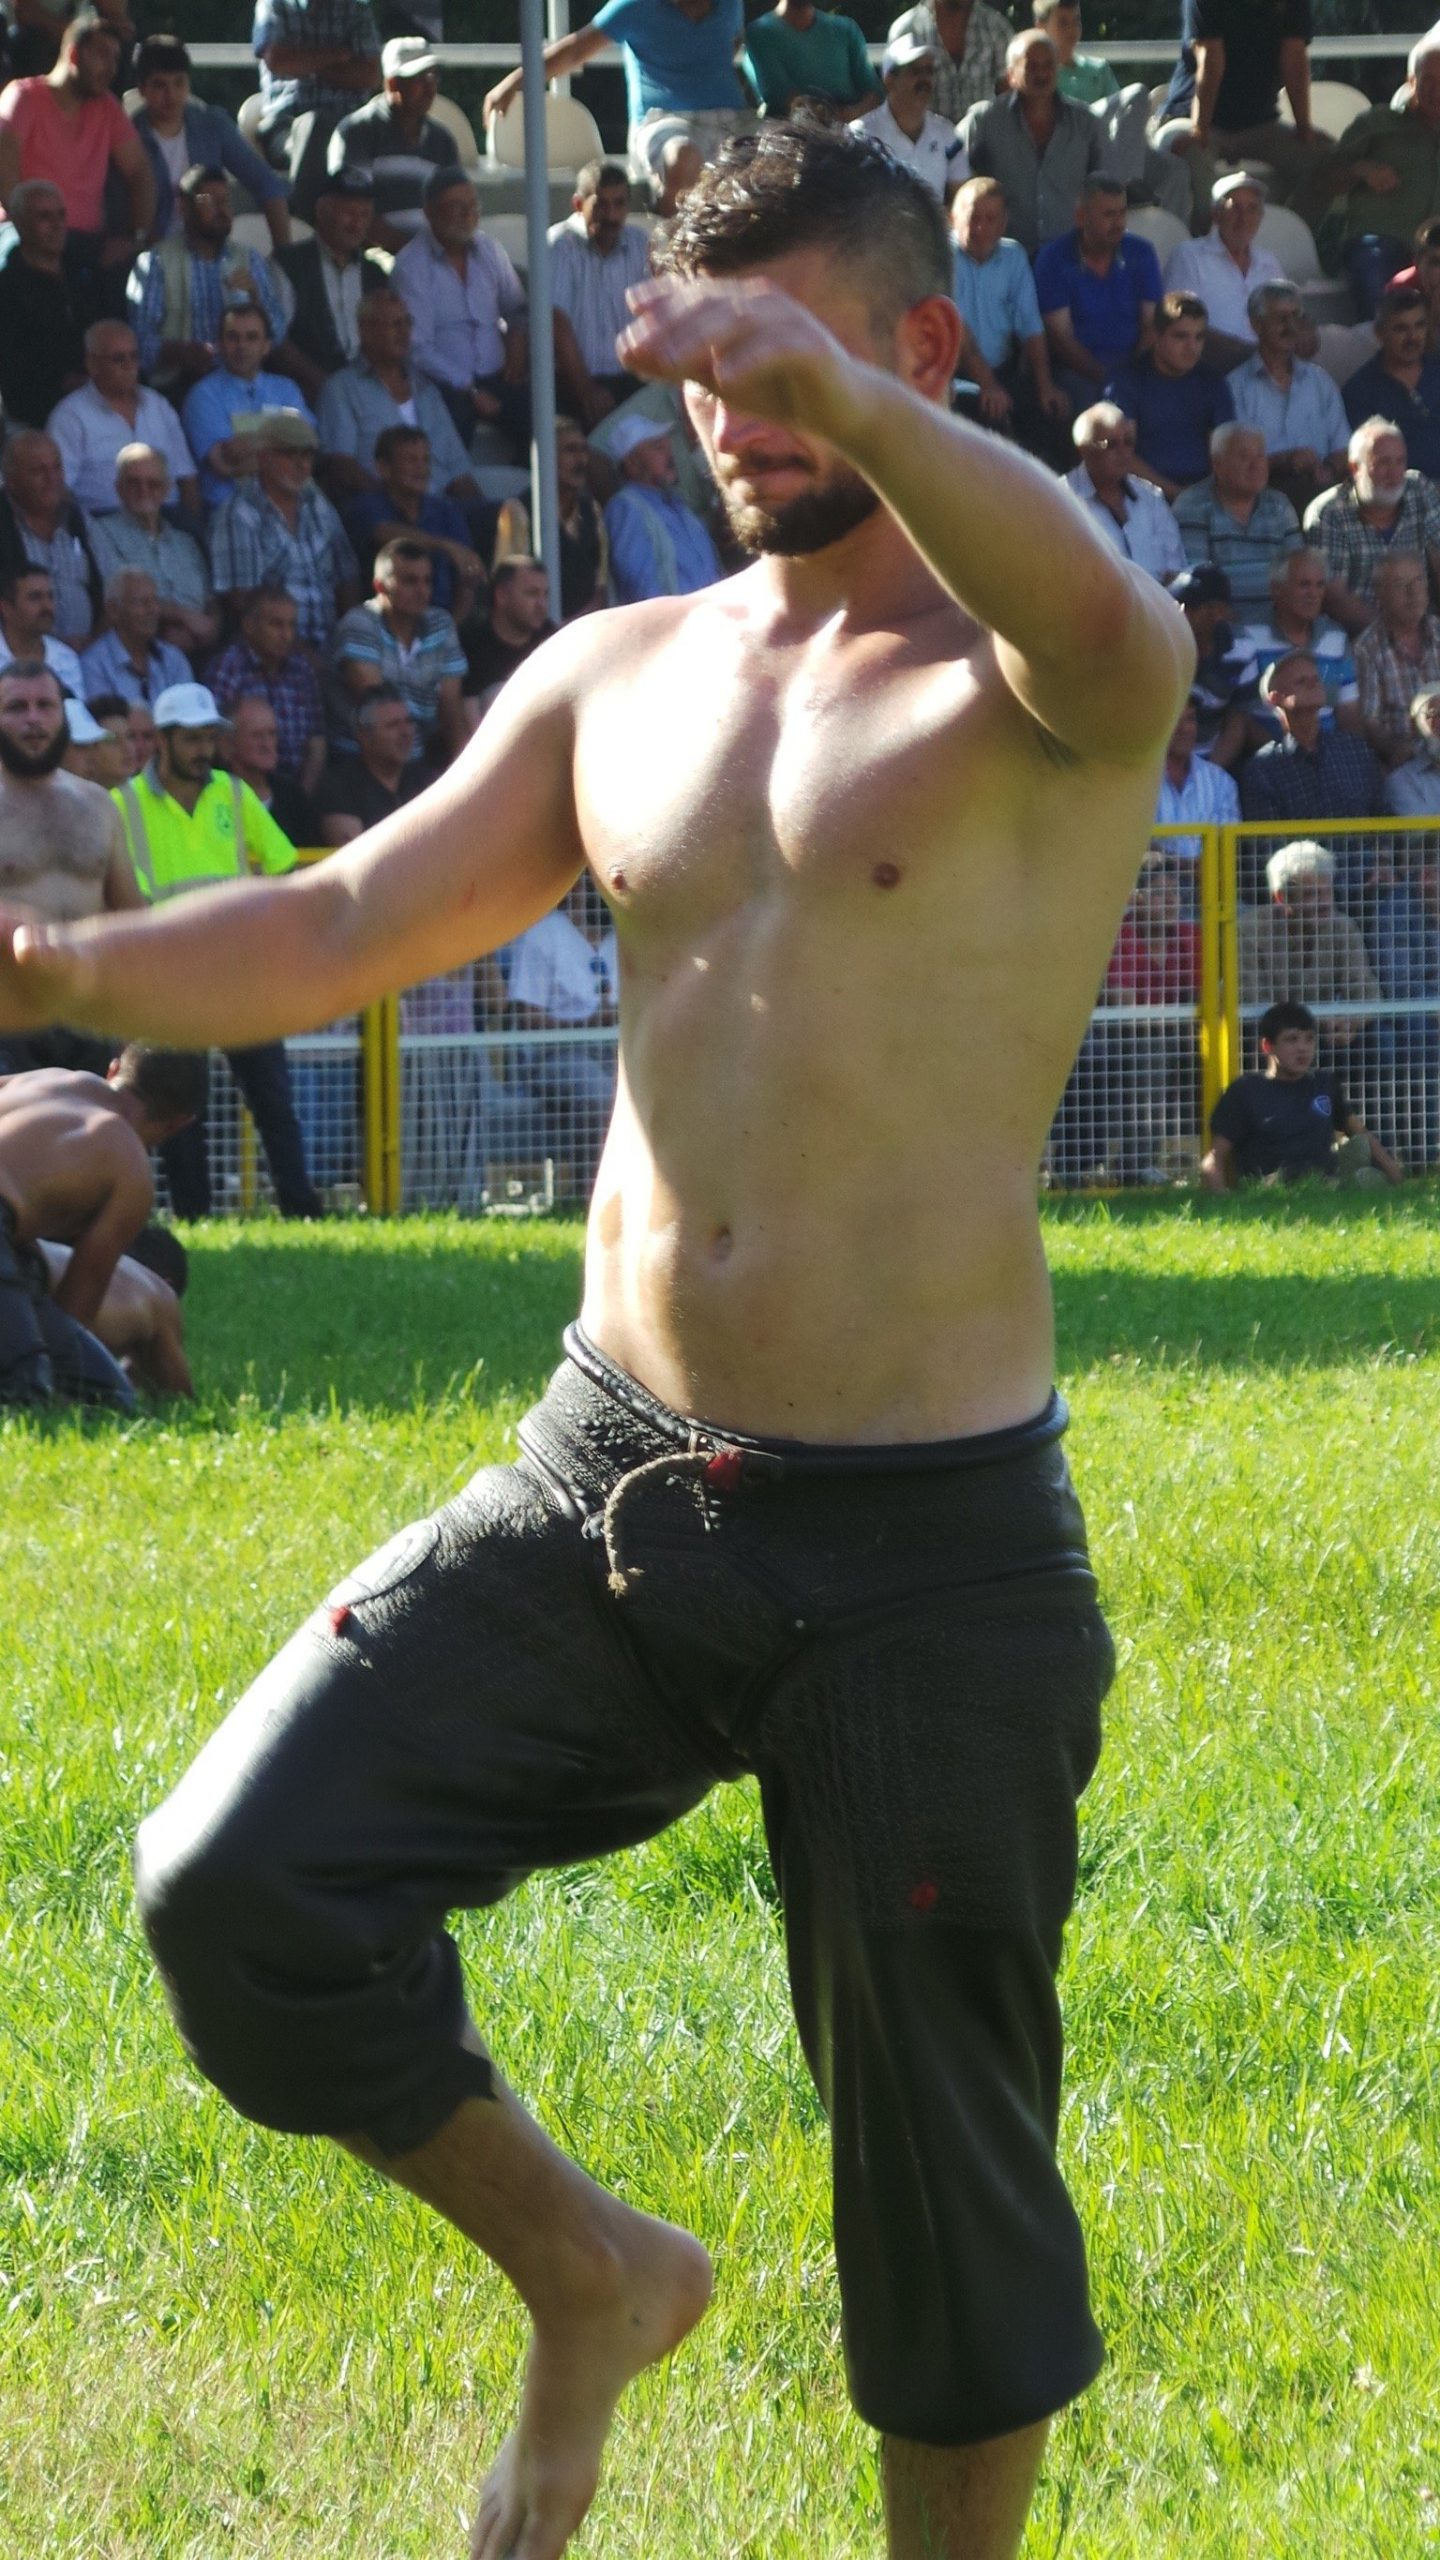 turkish oil wrestler entering the field for competition